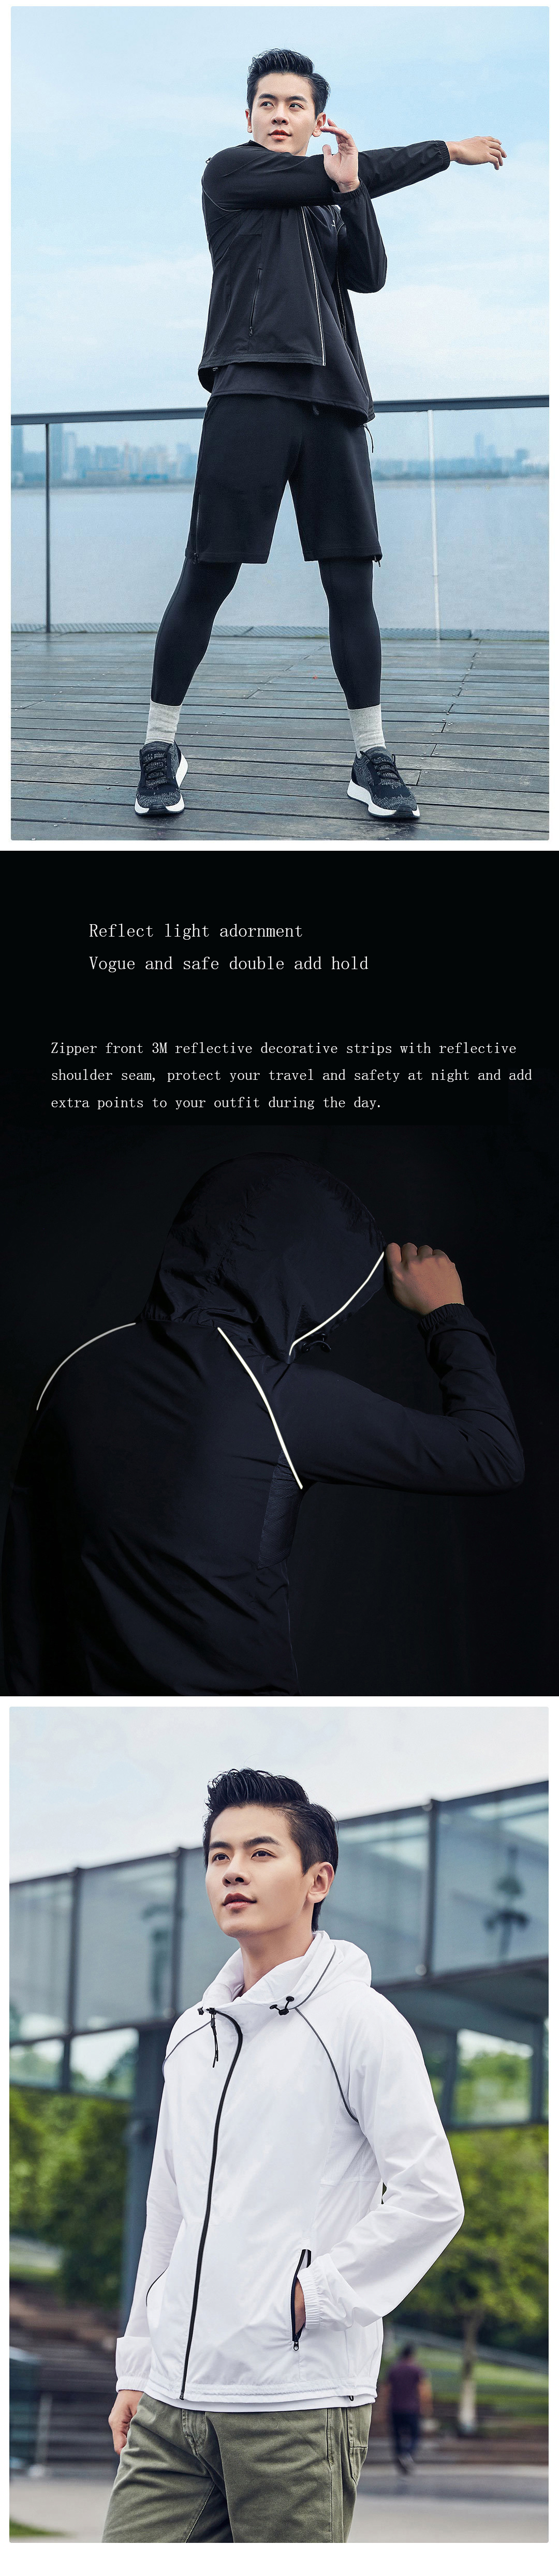 XIAOMI ULEEMARK Summer Sun Protection Men Quick Drying Anti-UV Lightweight Sun proof Clothing Coats